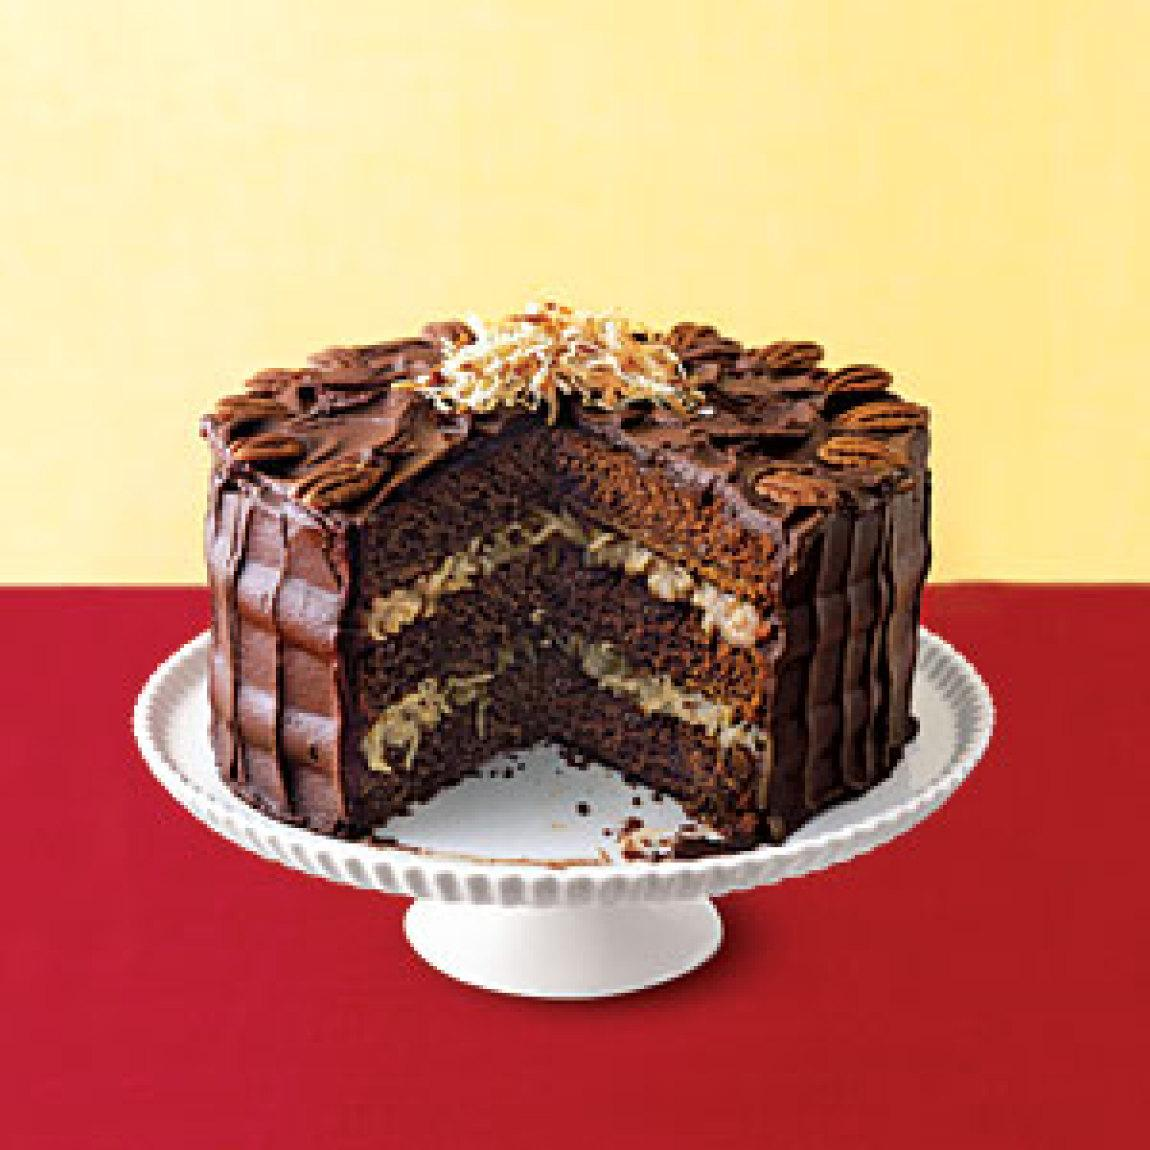 German Chocolate Cake Recipe Dishmaps